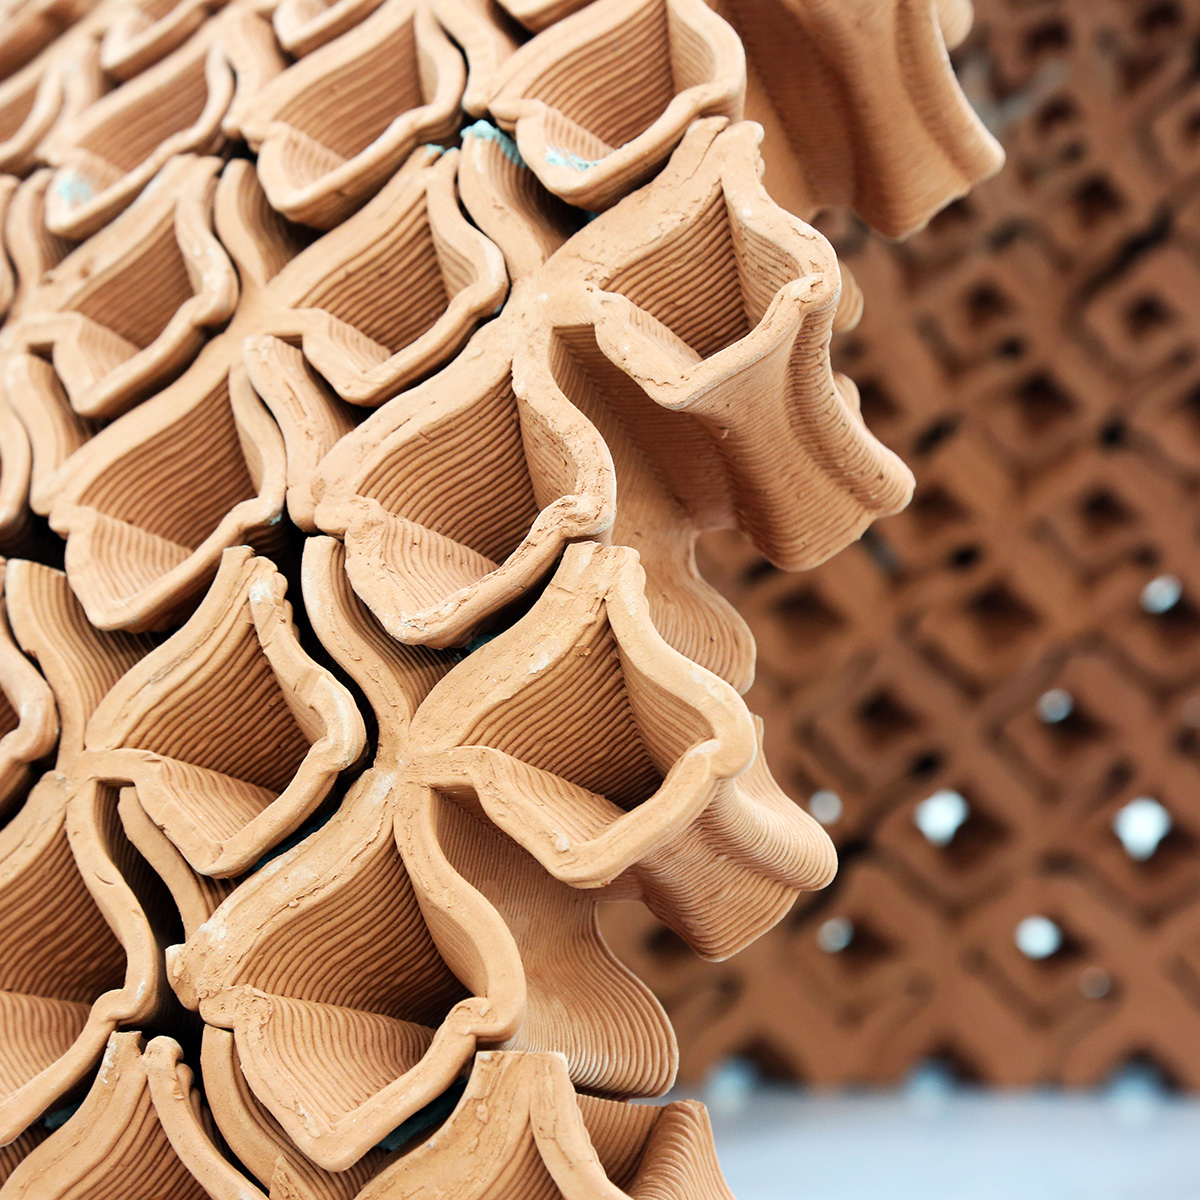 3d printing, Hong Kong, Terracotta, The University of Hong Kong, faculty of Architecture, MArch Studio, Christian J Lange